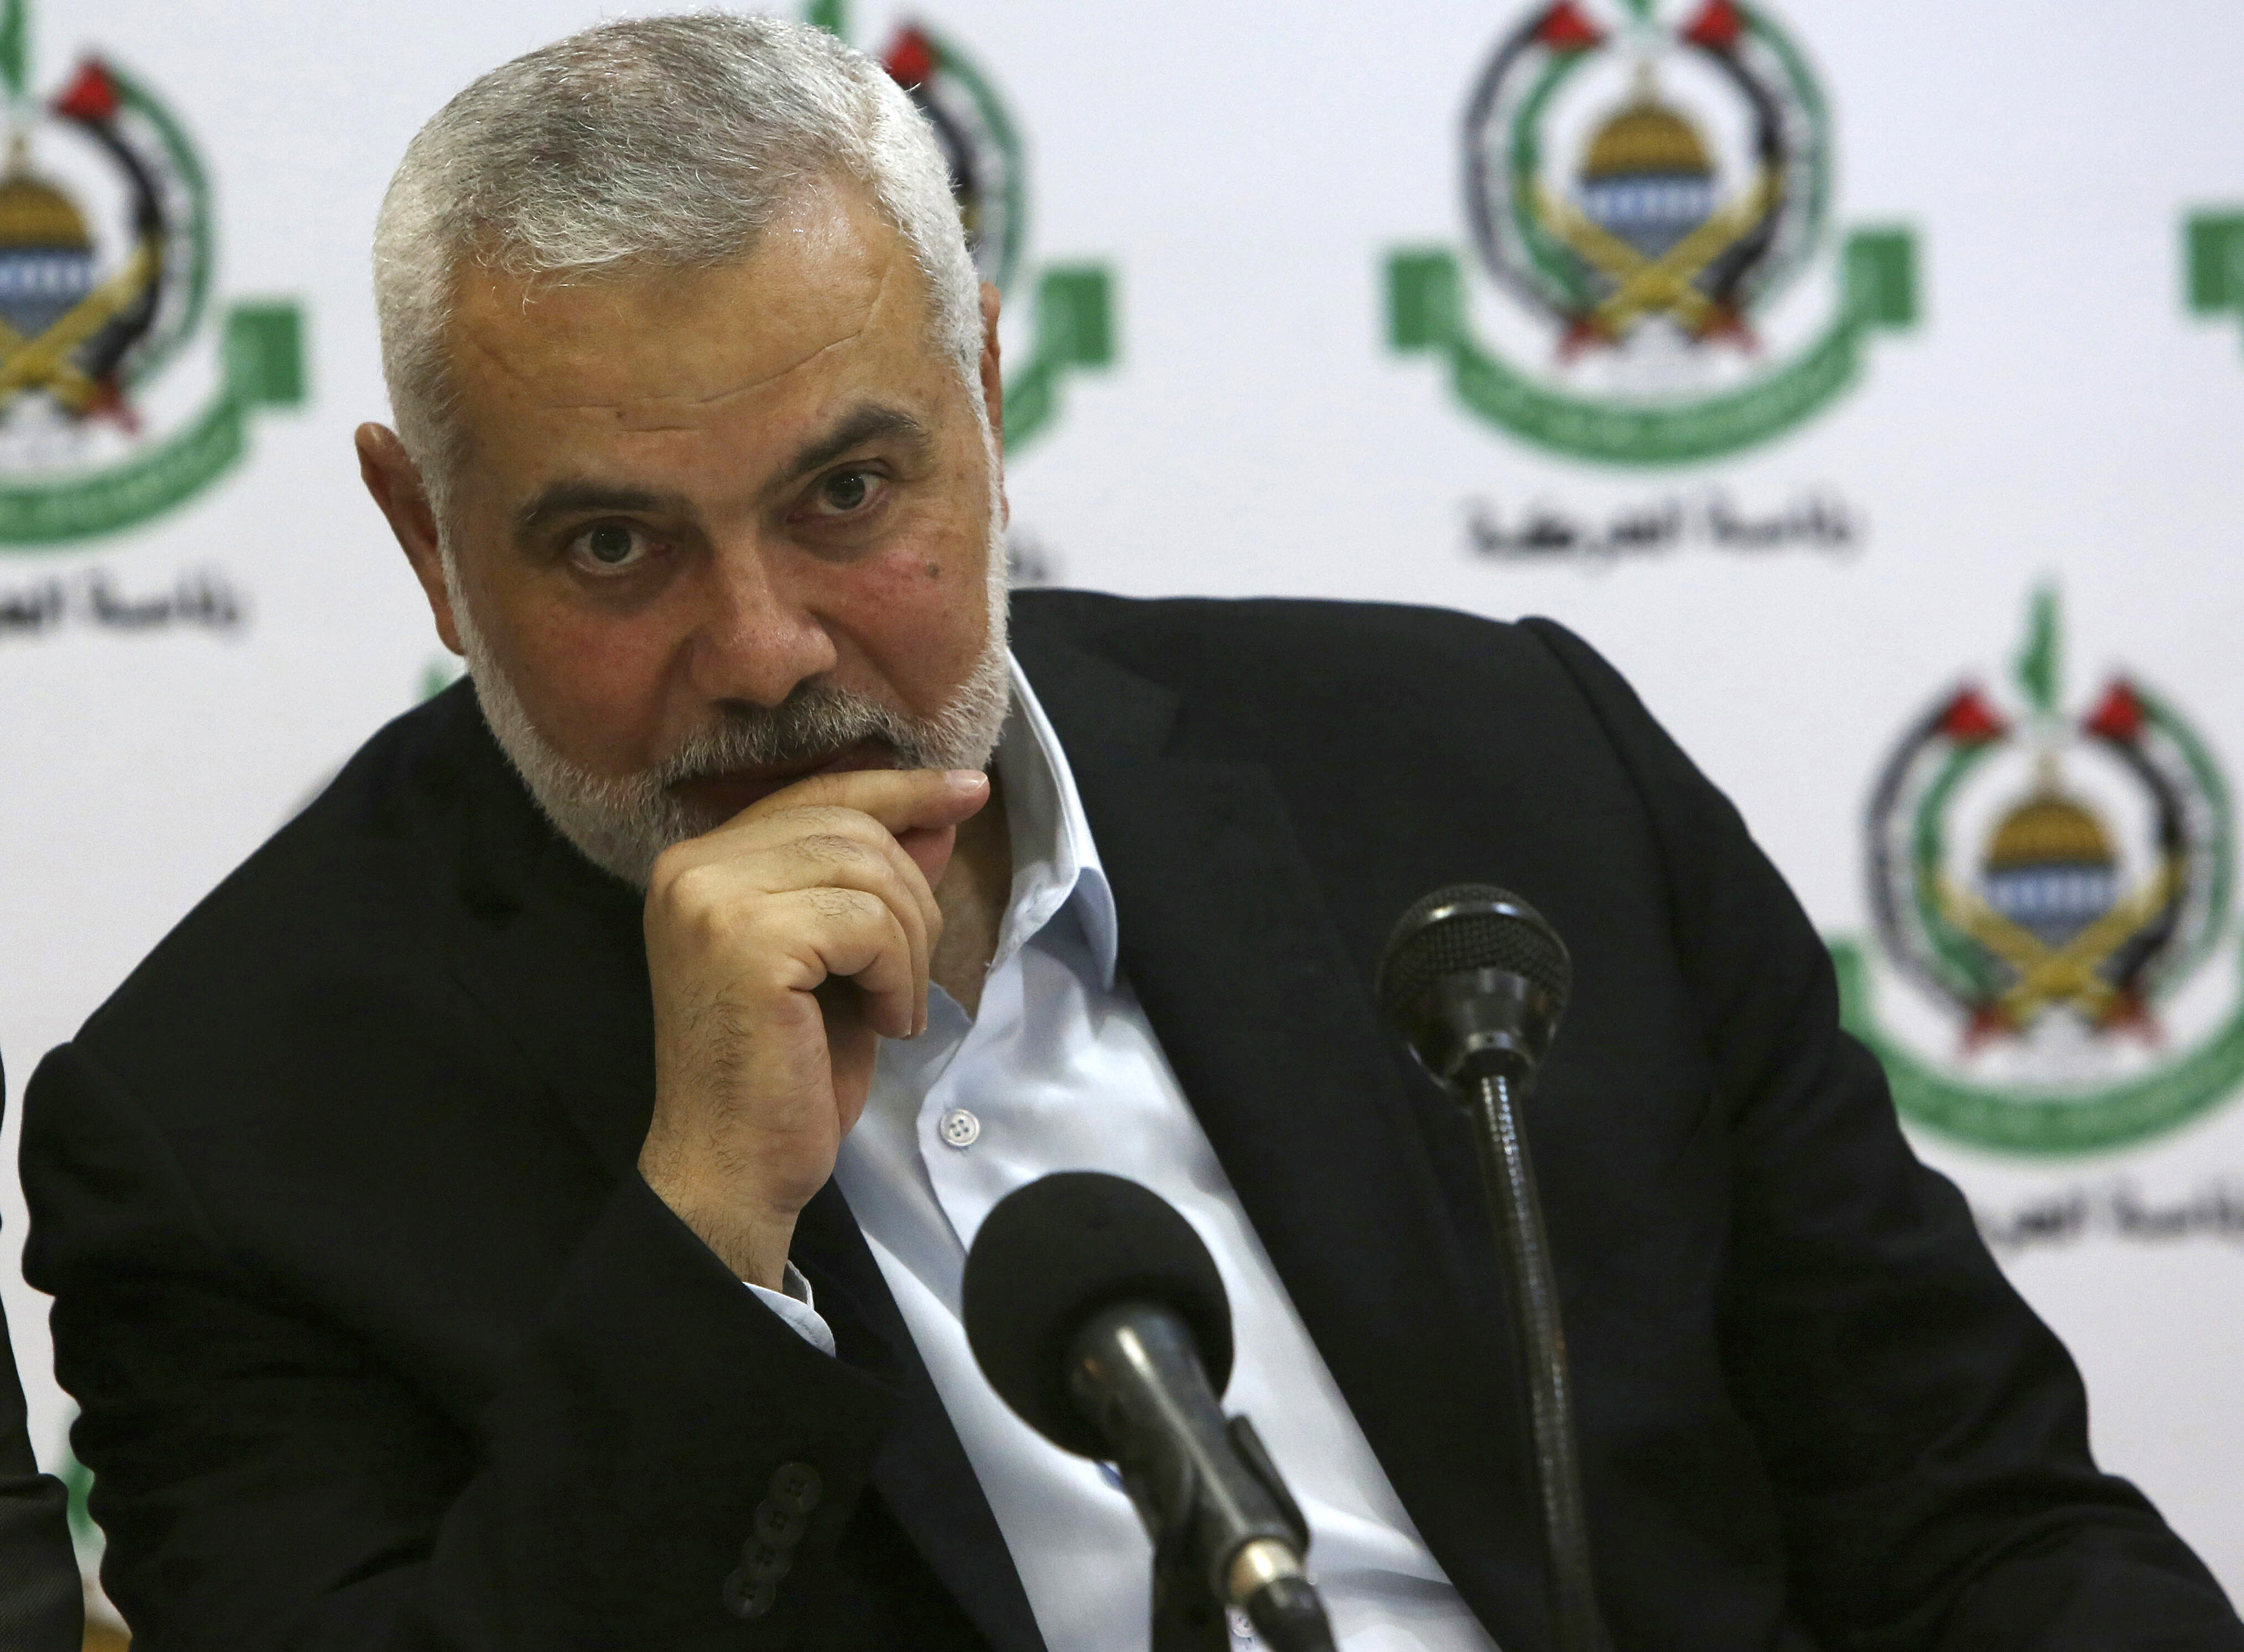 Hamas' chief Ismail Haniyeh attends a meeting with foreign reporters at al-Mat'haf hotel in Gaza City, Thursday, June 20, 2019. Hamas' chief says Israel is ignoring the terms of an indirect cease-fire agreement for the Gaza Strip. (AP Photo/Adel Hana)